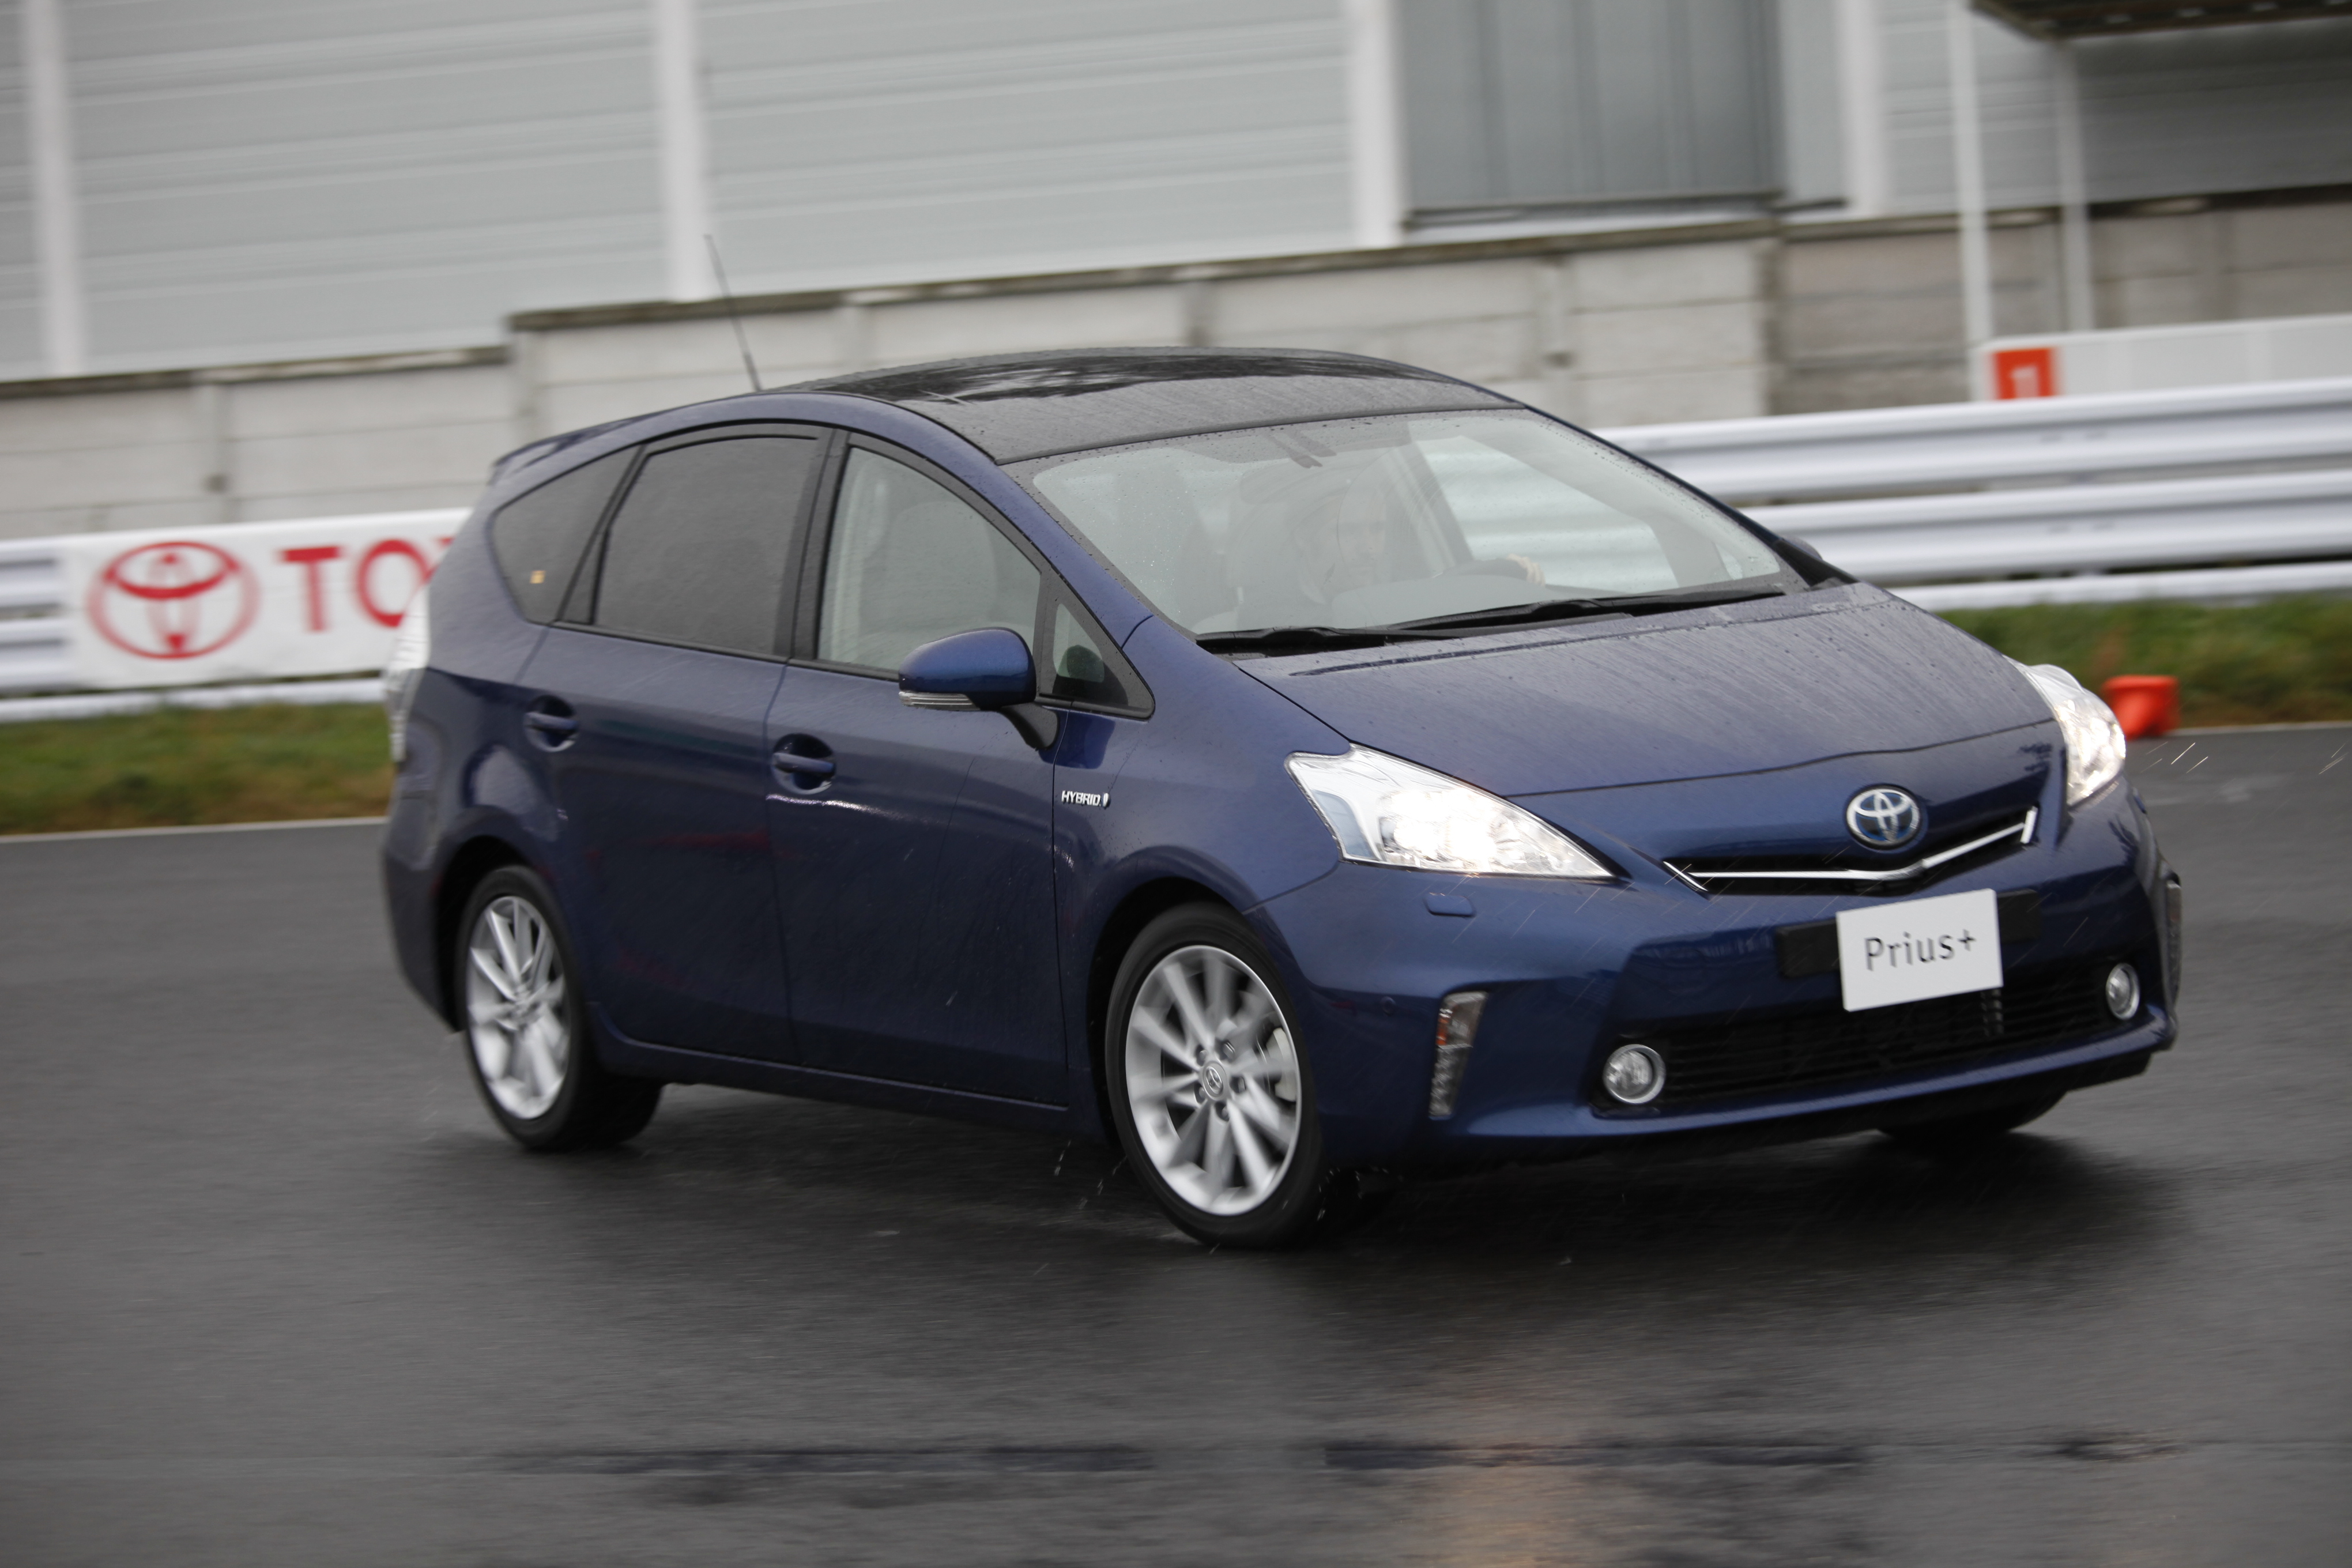 the toyota prius essay In regards the toyota prius case, the factors that the company dealt with are: customers: toyota launched the first generation in 2001 with a small, cramped and not attractive car into a market were the big suv's were dominating the business.